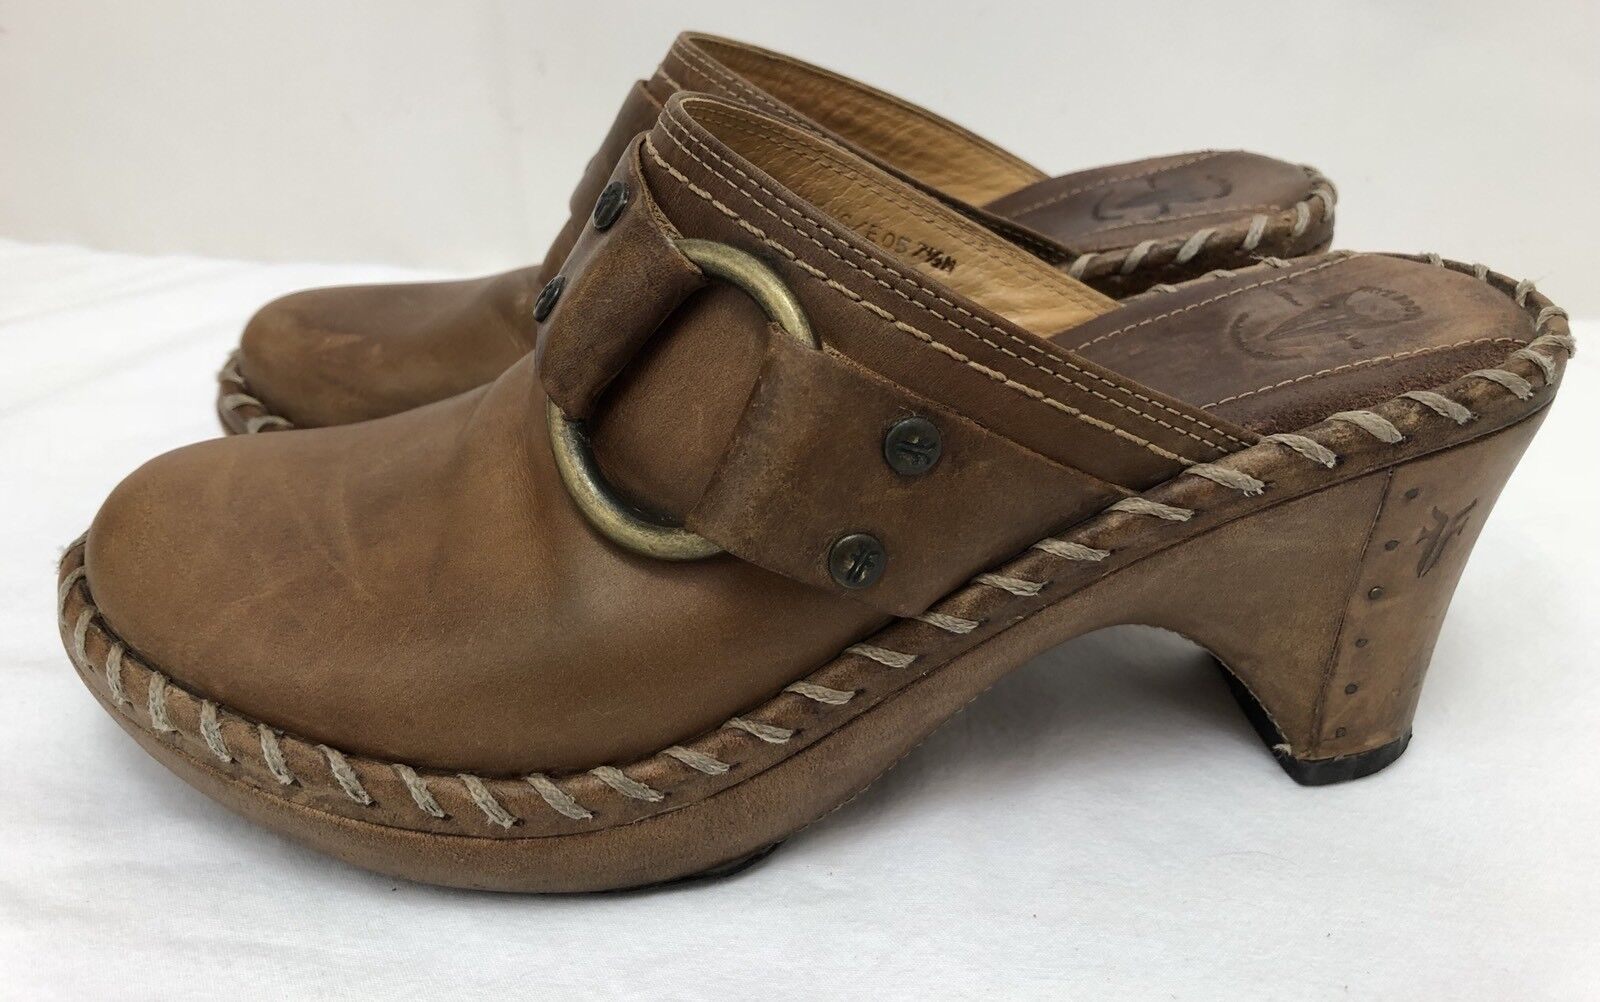 Womens FRYE 'Charlotte' 70770 Brown Leather Harness Mules Clogs shoes SIZE 7.5 M